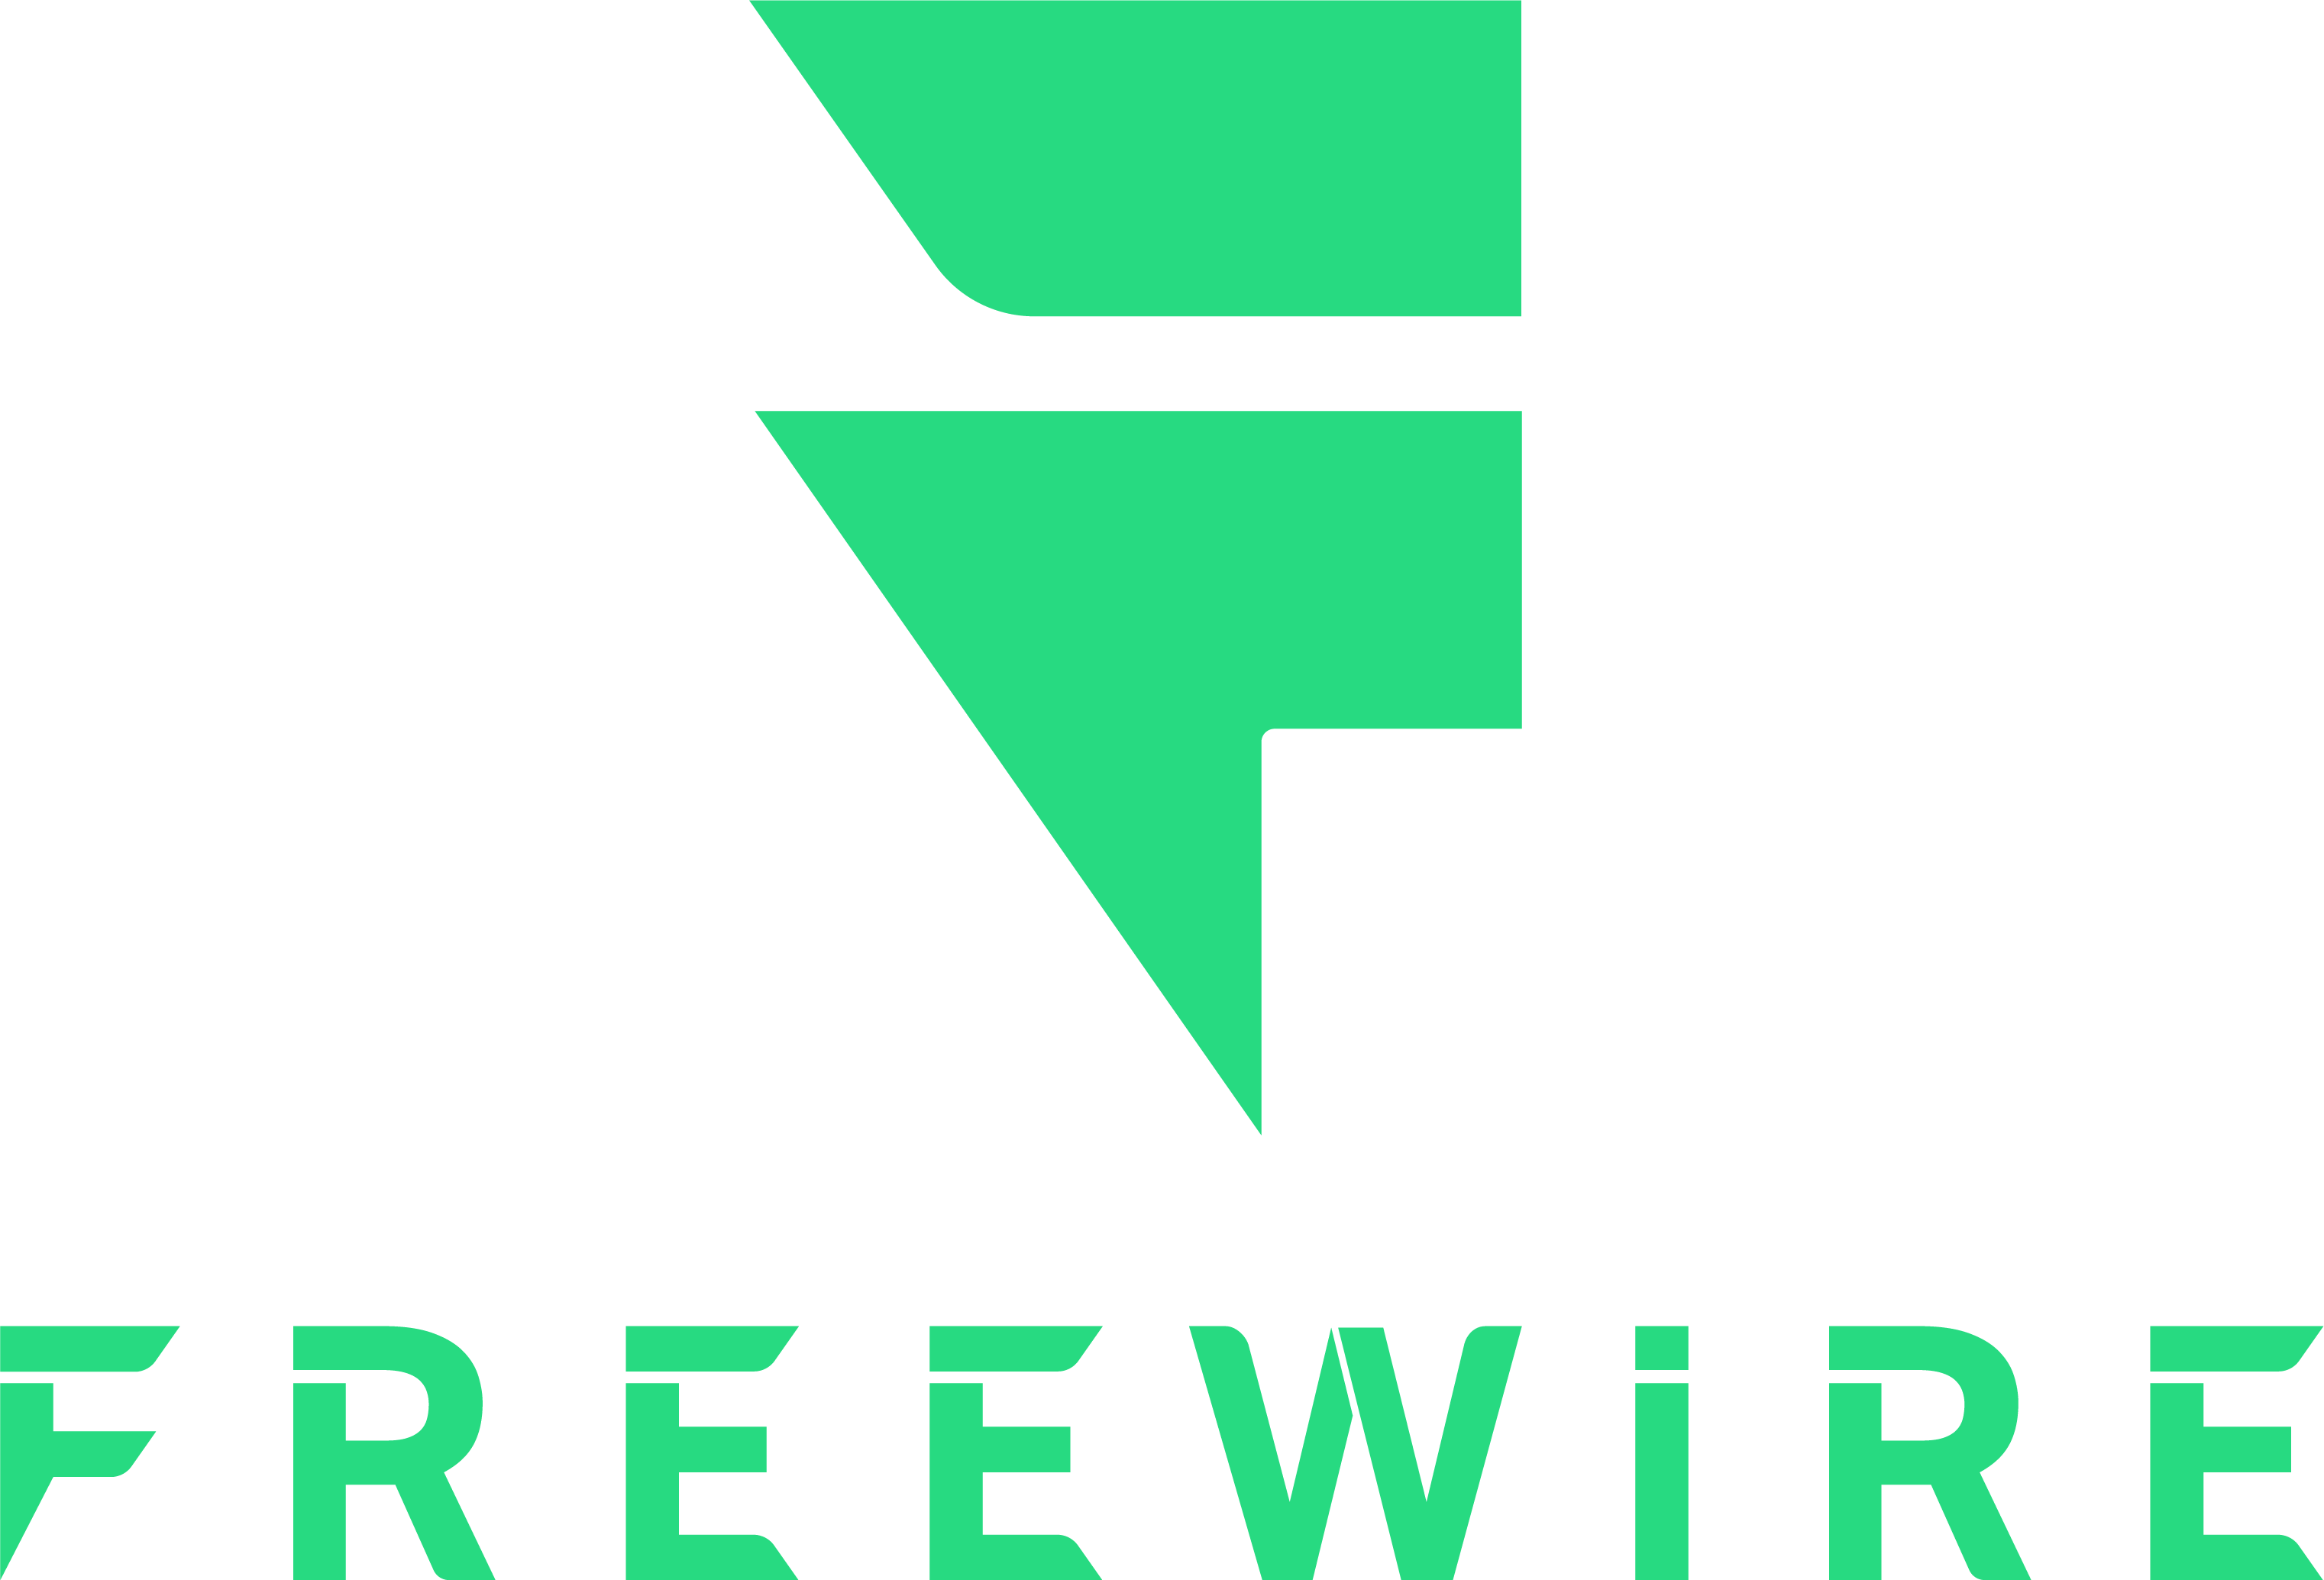 FreeWire_logos_RGB_freewire_vertical_mark_green